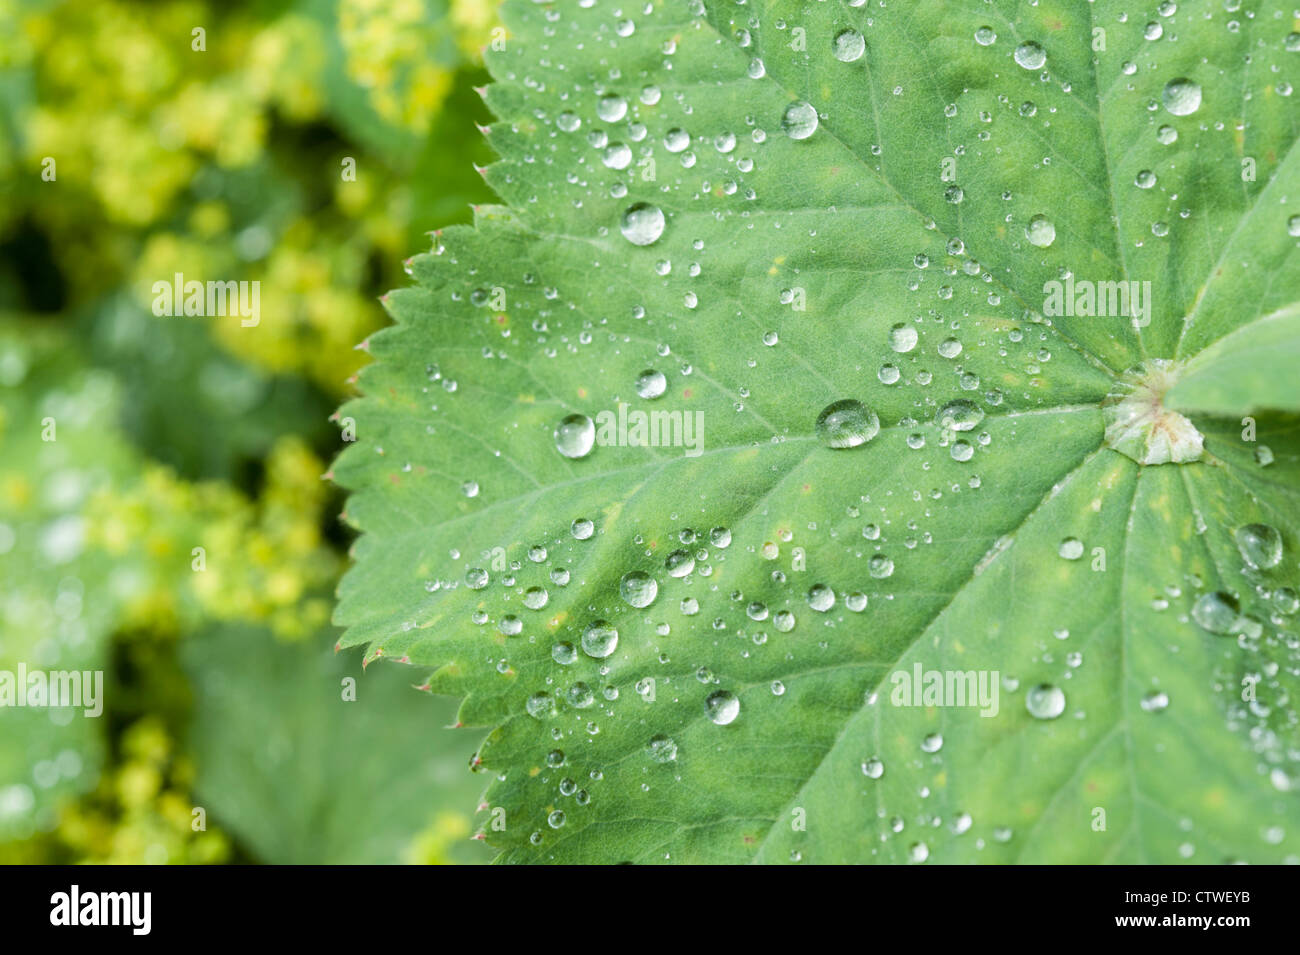 Lady's Mantle Alchemilla herbaceous perennial plants part of the Rosaceae family - Stock Image